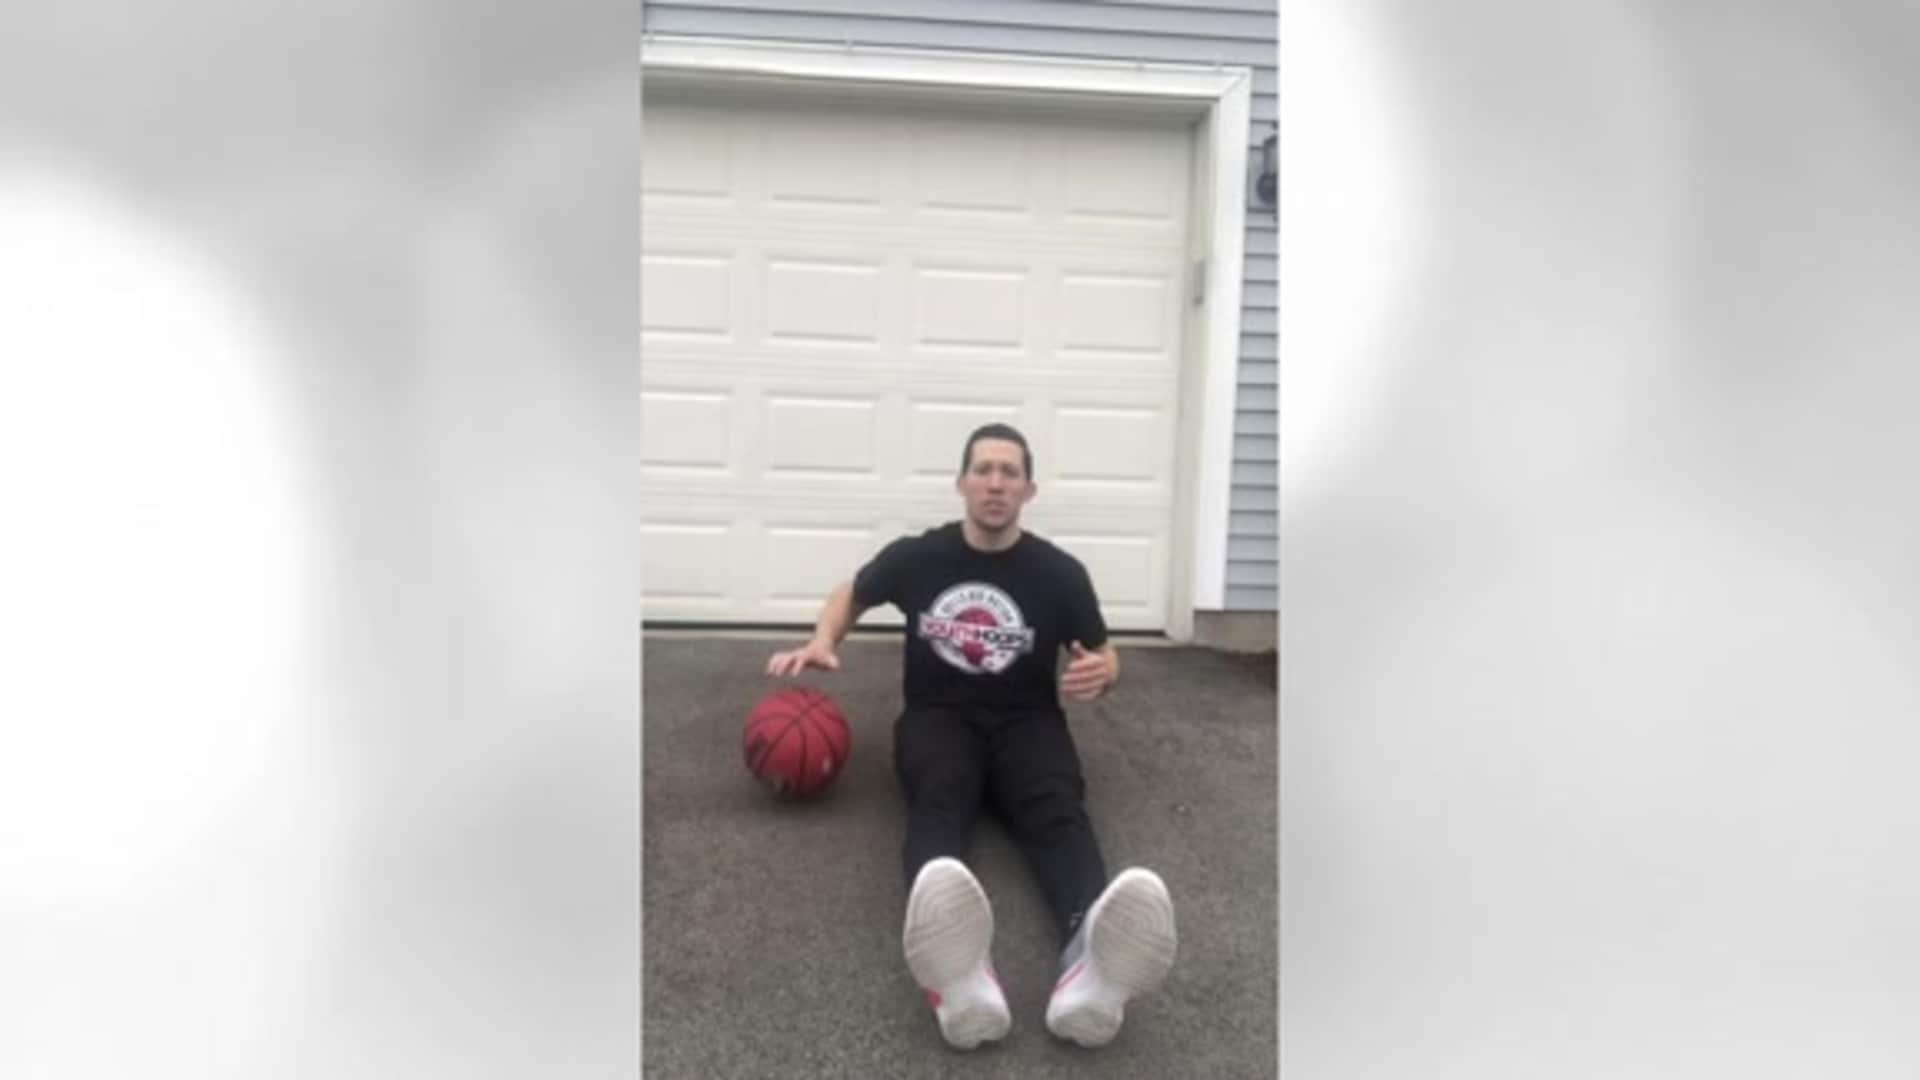 Youth Hoops Basketball Skills At Home: Sit Down Dribbles